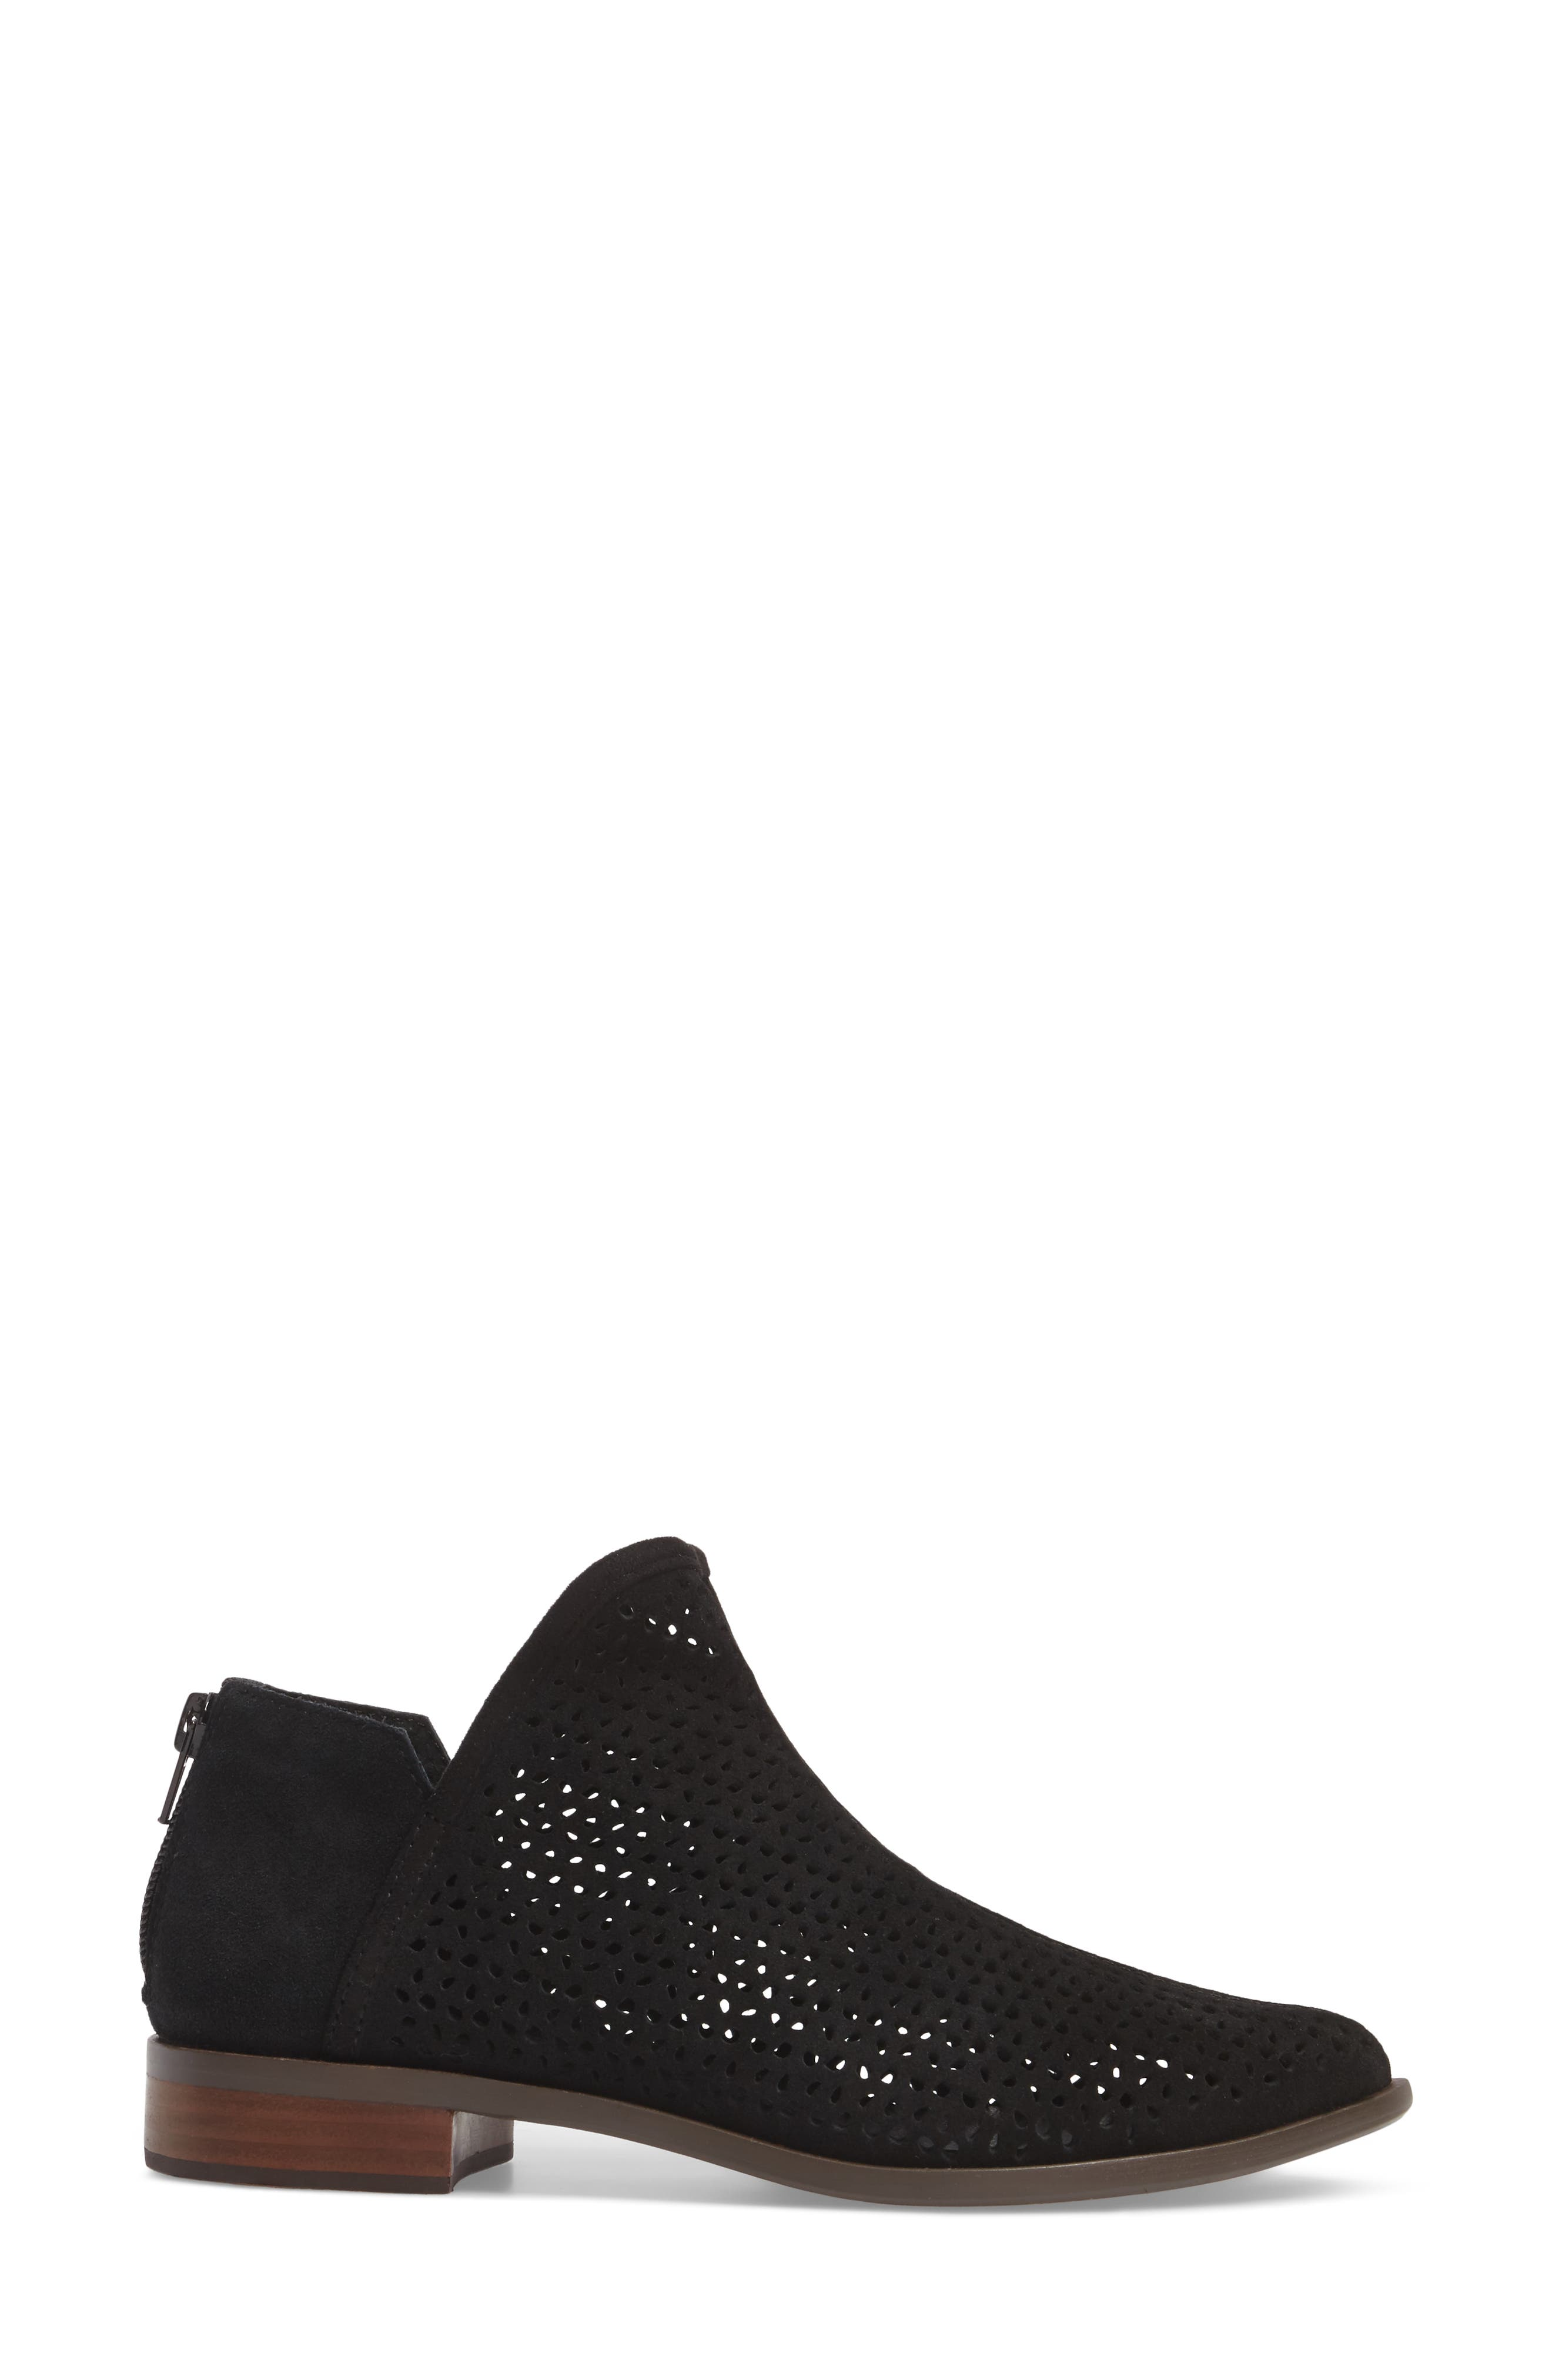 Alley Perforated Bootie,                             Alternate thumbnail 3, color,                             001